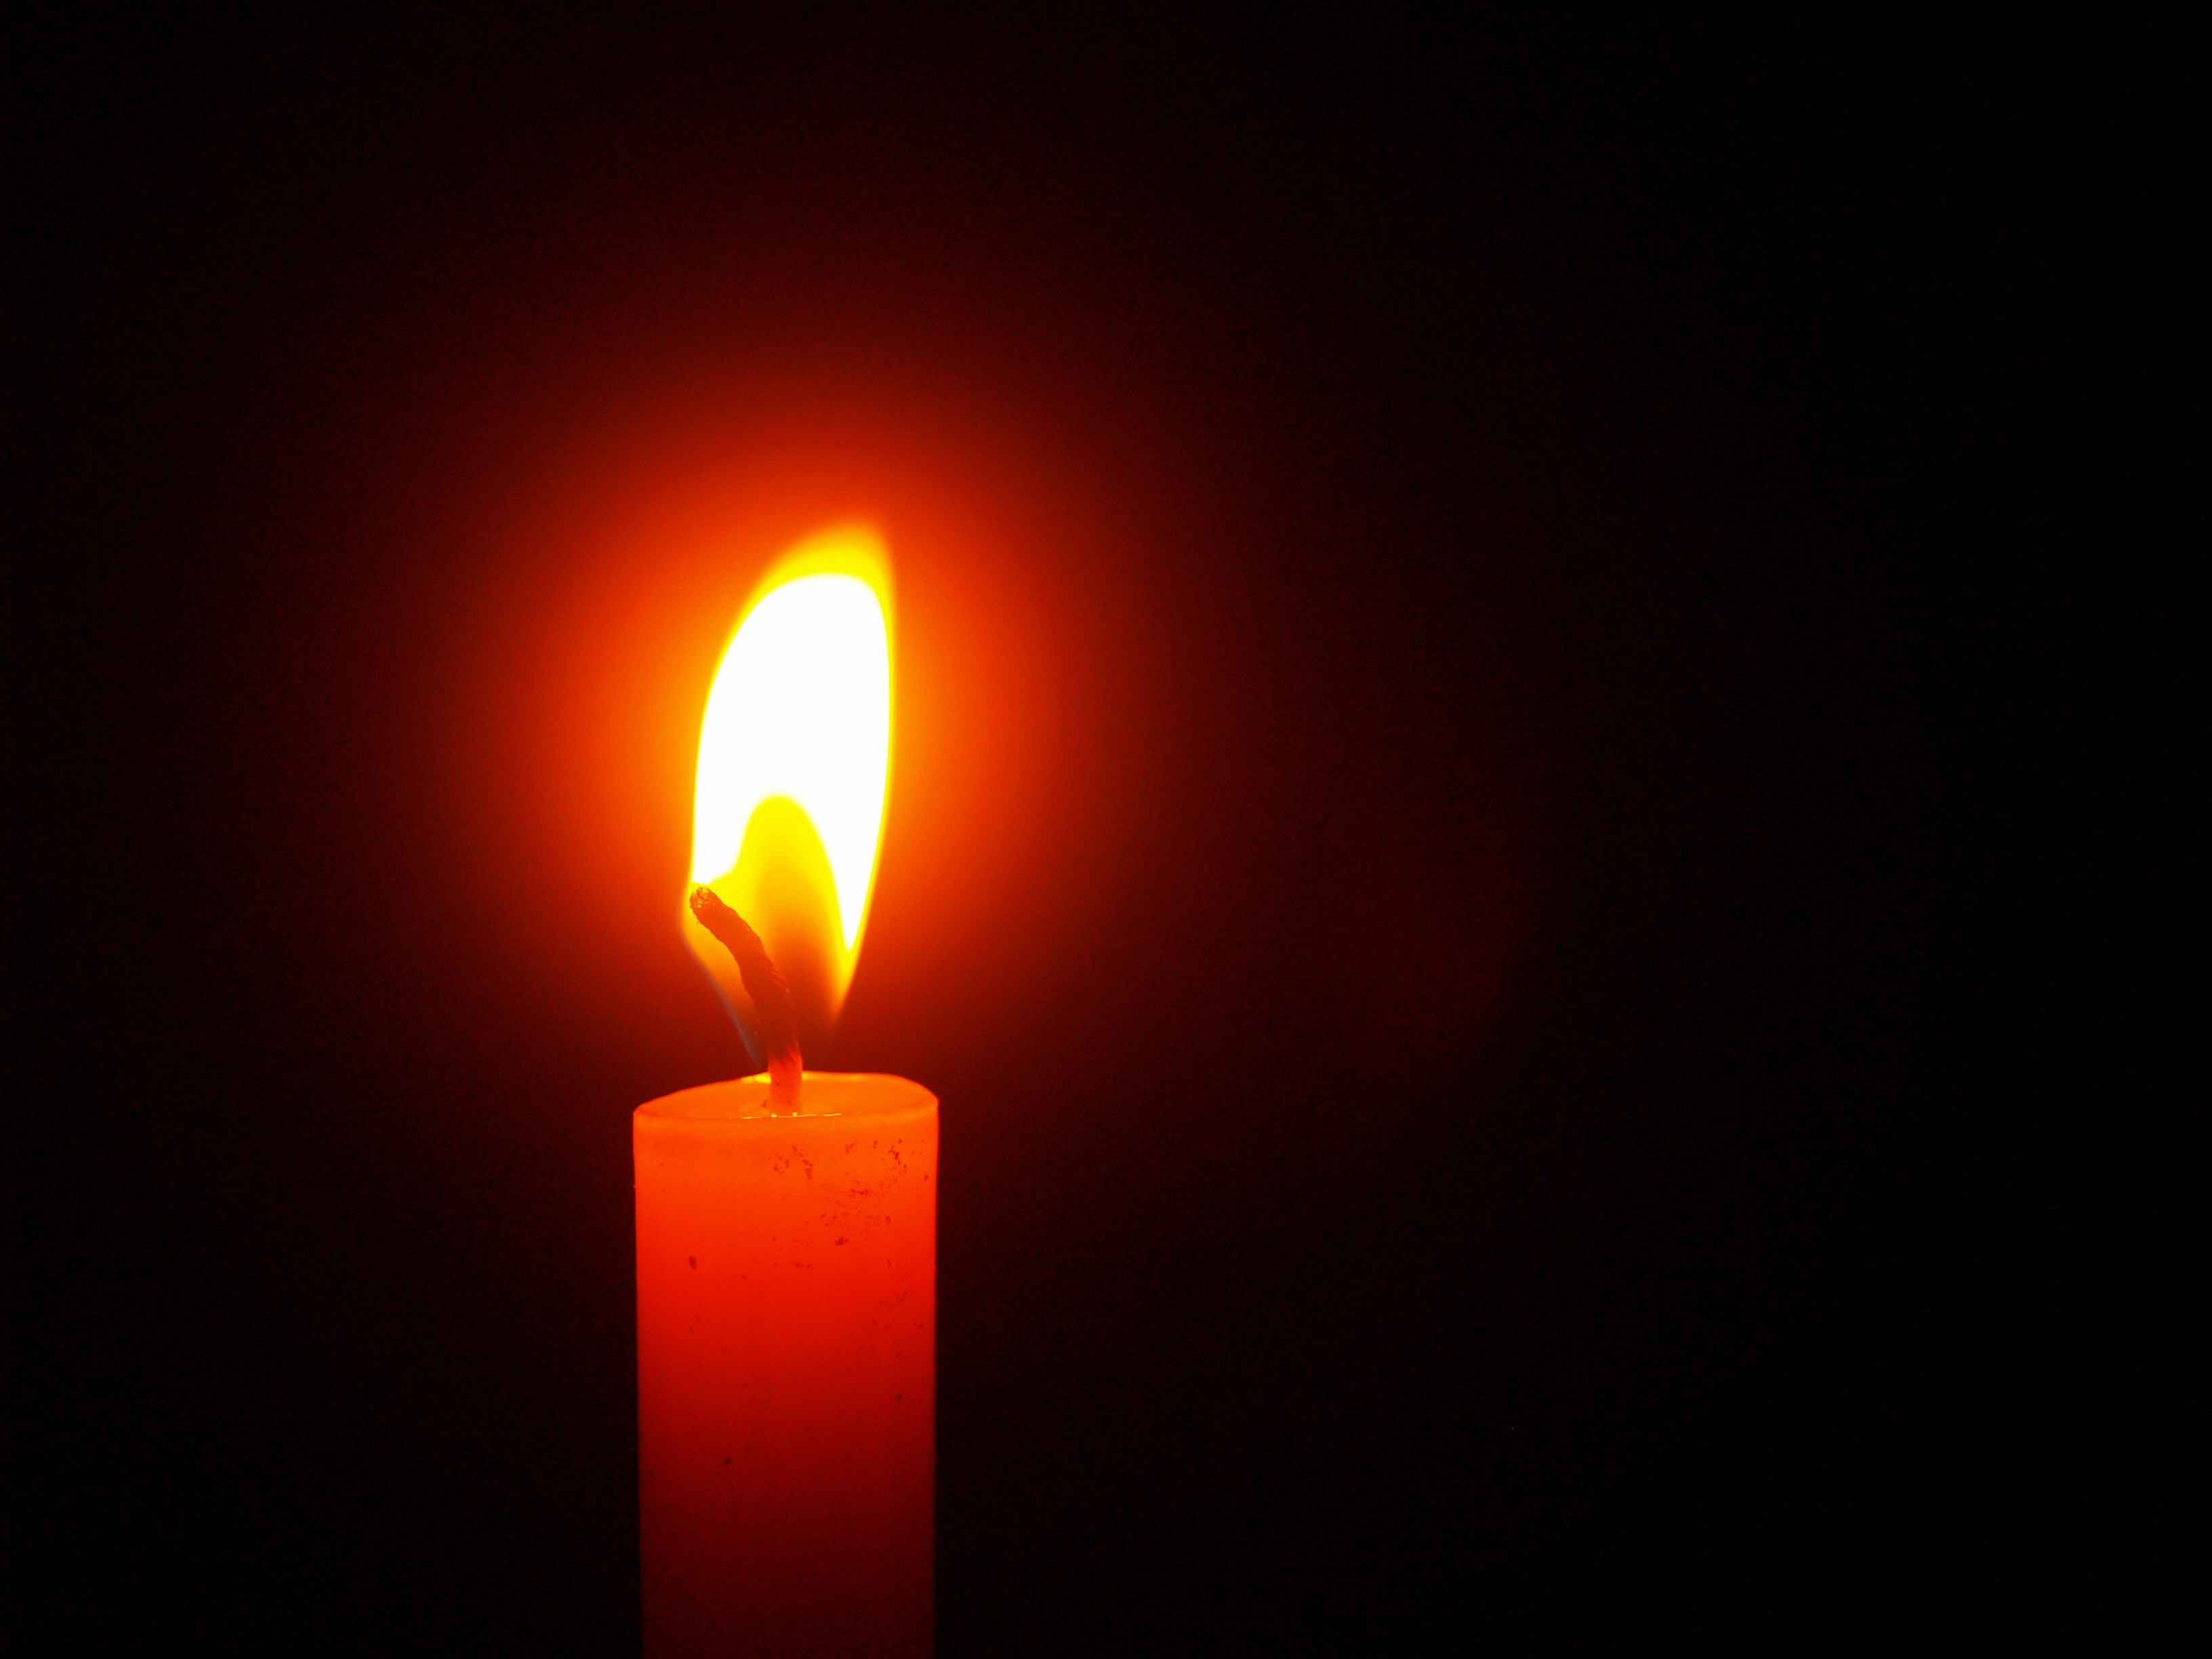 Red Lighted Candle · Free Stock Photo